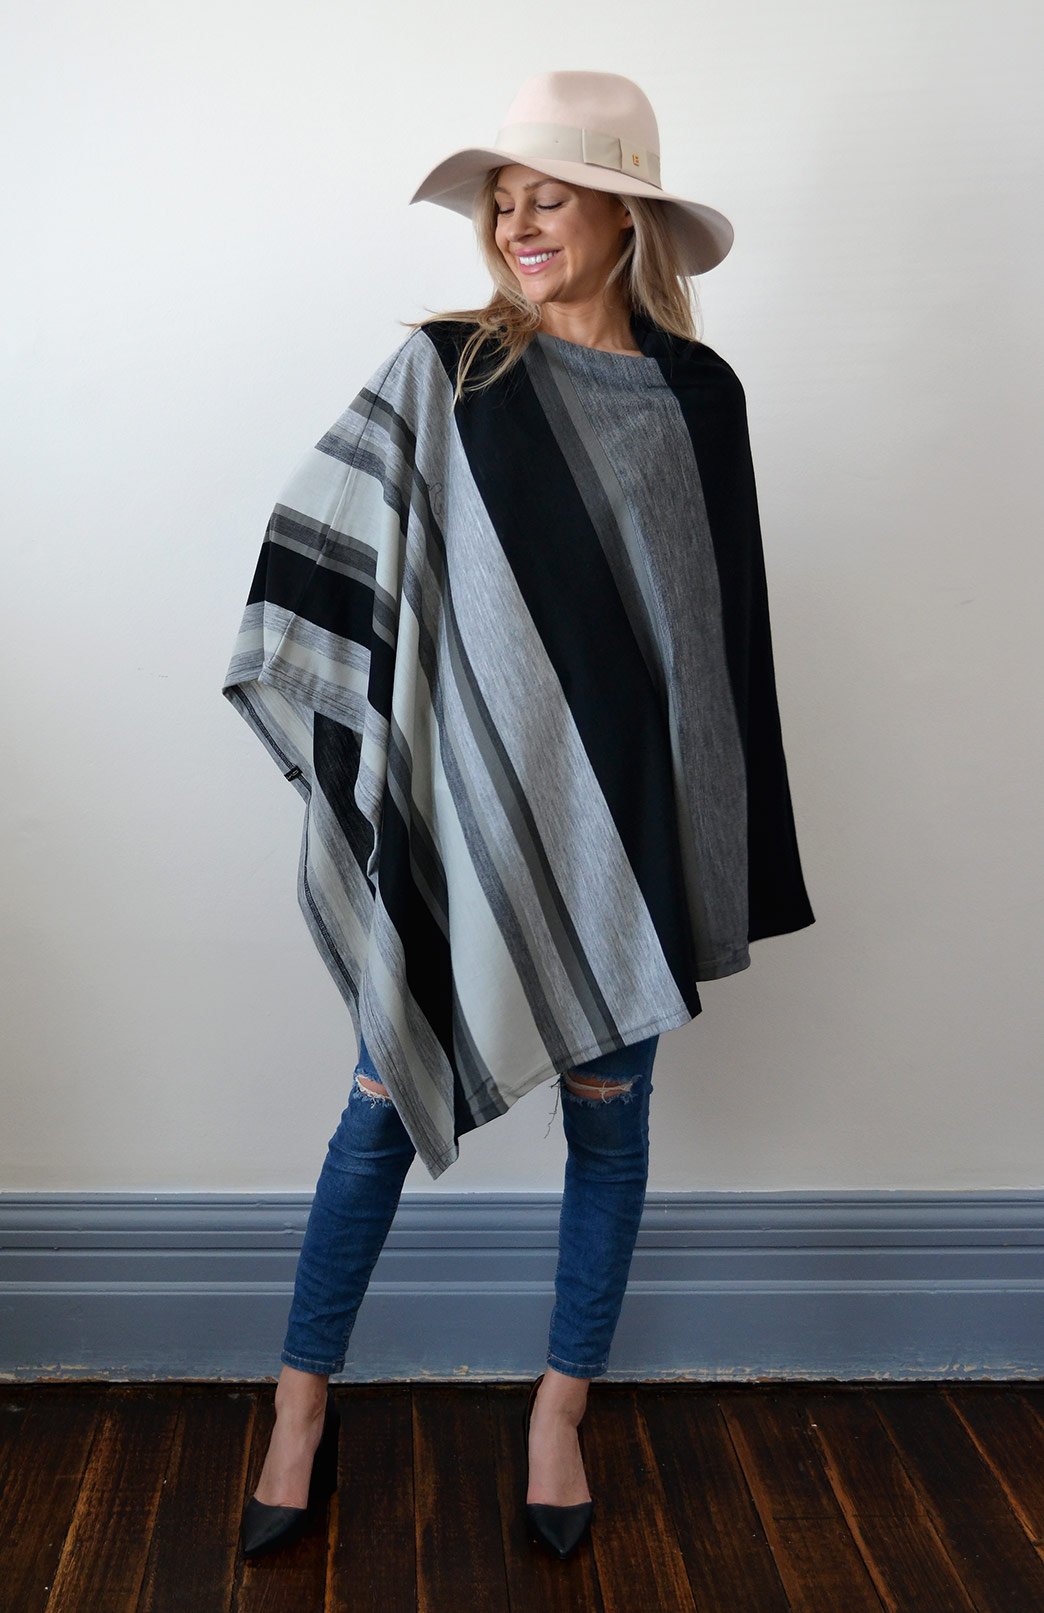 Oversized Poncho - Striped & Patterned - Women's Black Multi Striped Oversized Wool Poncho - Smitten Merino Tasmania Australia